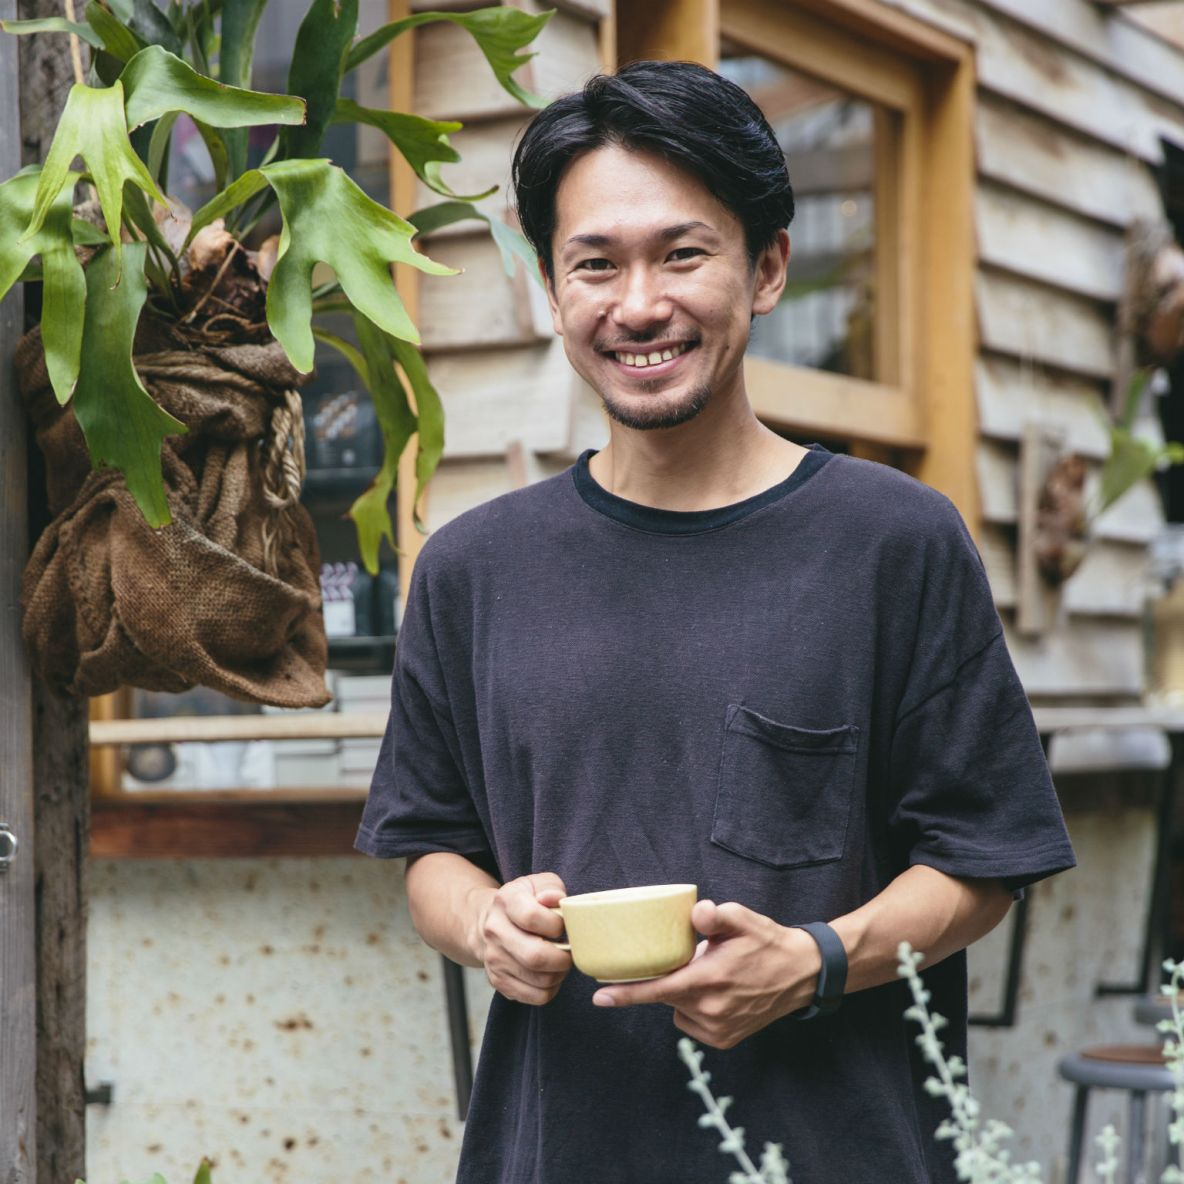 Community-centric coffee shop that values sustainability